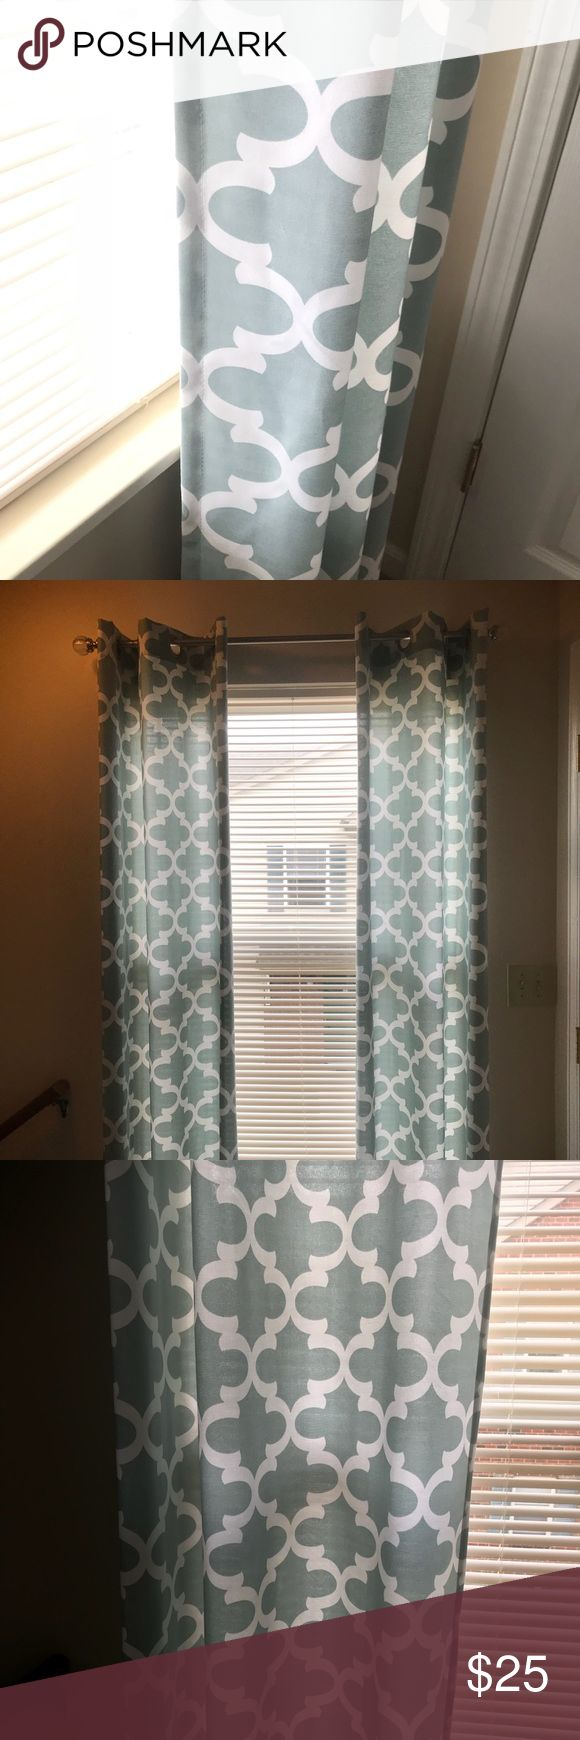 """Home Goods Curtain Panels -4 panels -Make me an offer -Geometric Pattern -Aqua Color -Last Picture shows inside of panel -84"""" long -Excellent Condition  -Smoke and Pet Free Home Home Goods Other"""